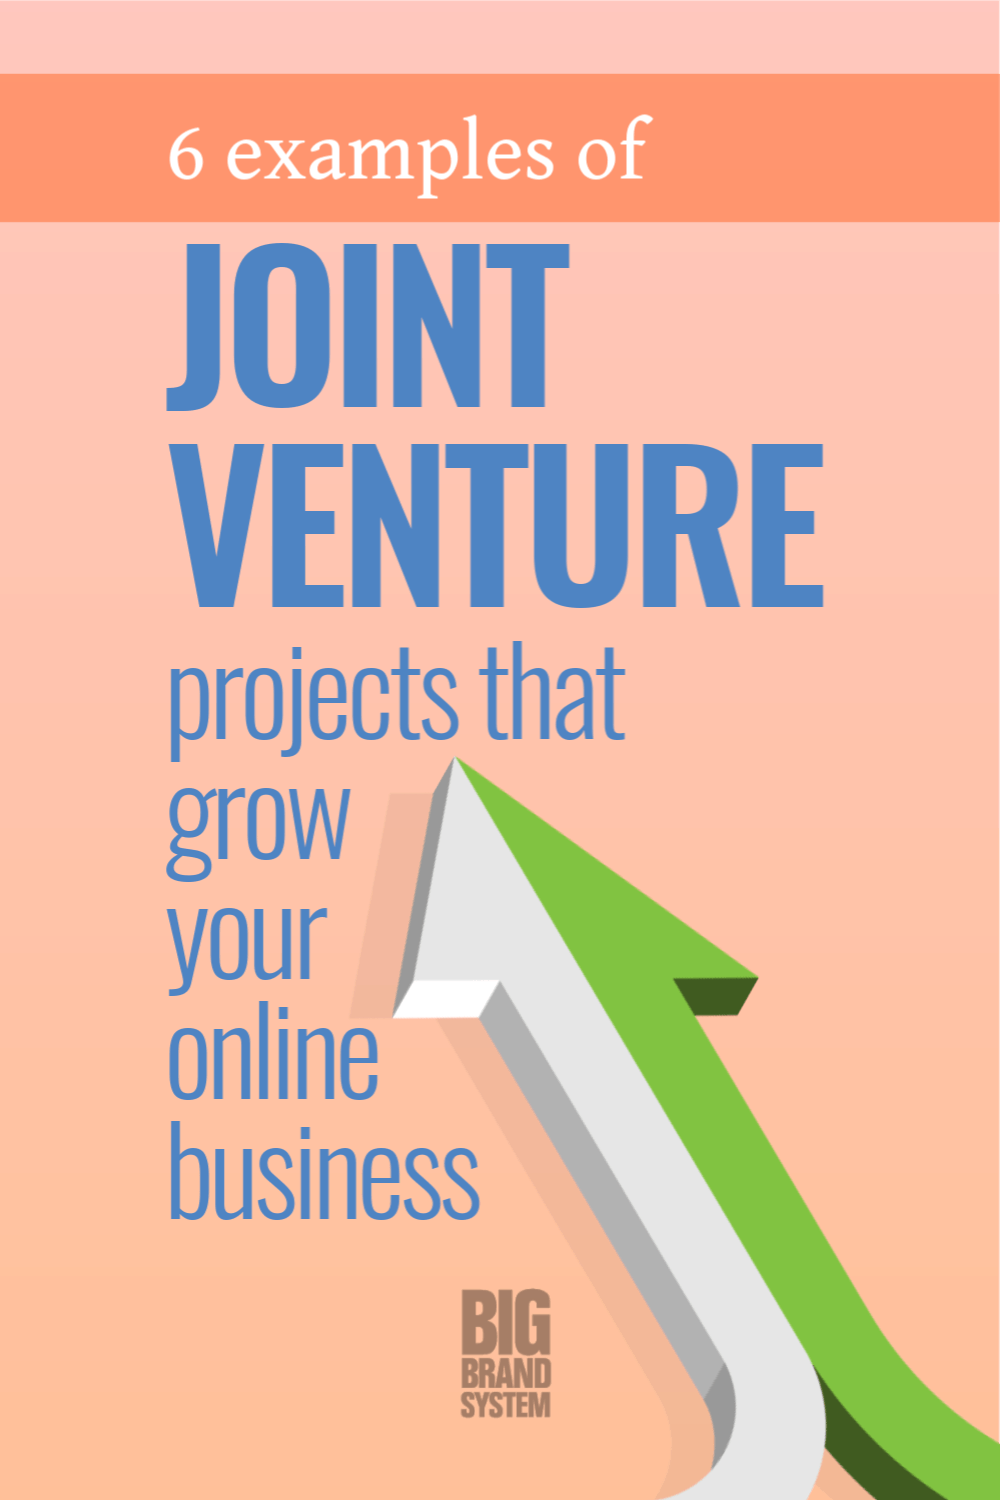 """""""I want to do a joint venture for my product."""" Great! Here are 6 joint venture examples to get you started. These online joint venture ideas will help you pick the best joint venture partners and find a fit between your audience and theirs. Click through to grab 6 joint venture ideas — they range from simple and easy to complex and long term. #bigbrand #onlinebusiness"""